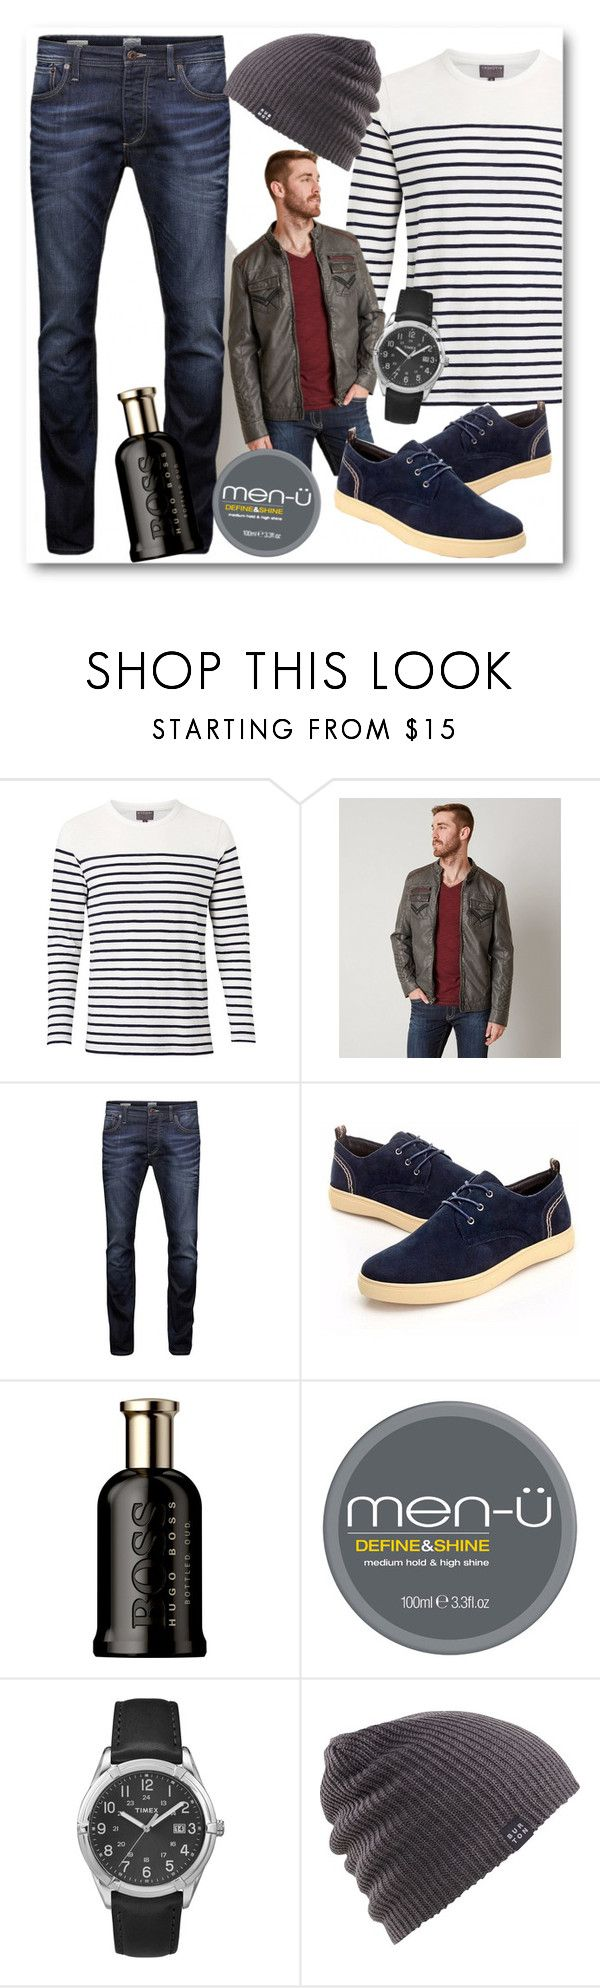 """Menswear"" by fashion-film-fun ❤ liked on Polyvore featuring Witchery, Buckle Black, Jack & Jones, HUGO, Timex, Burton, men's fashion and menswear"